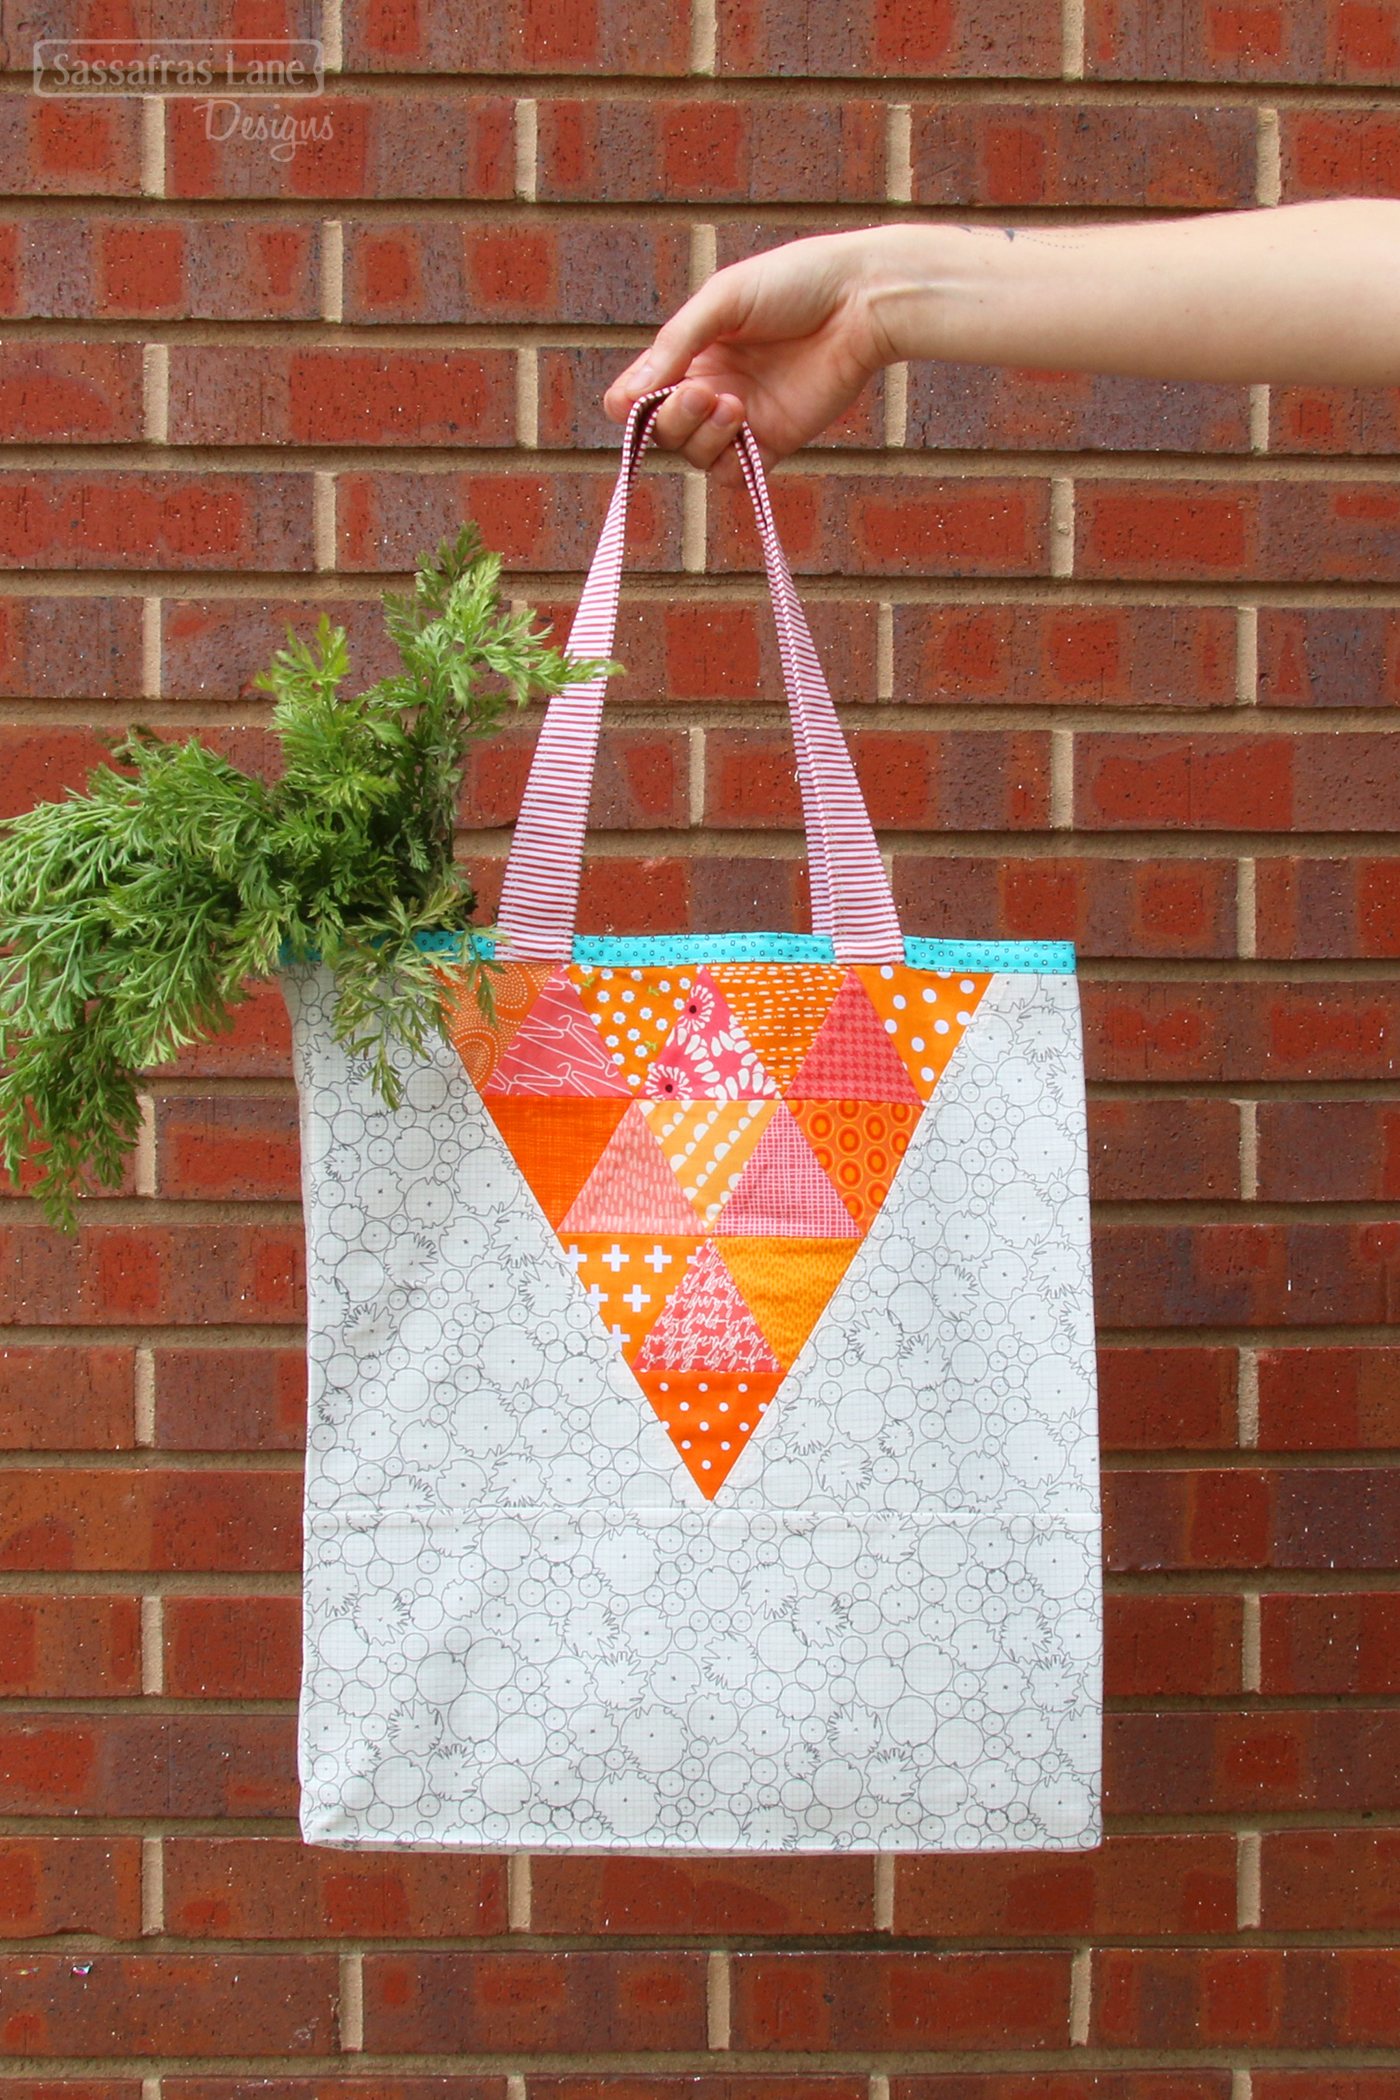 Introducing the Teddy Tote!